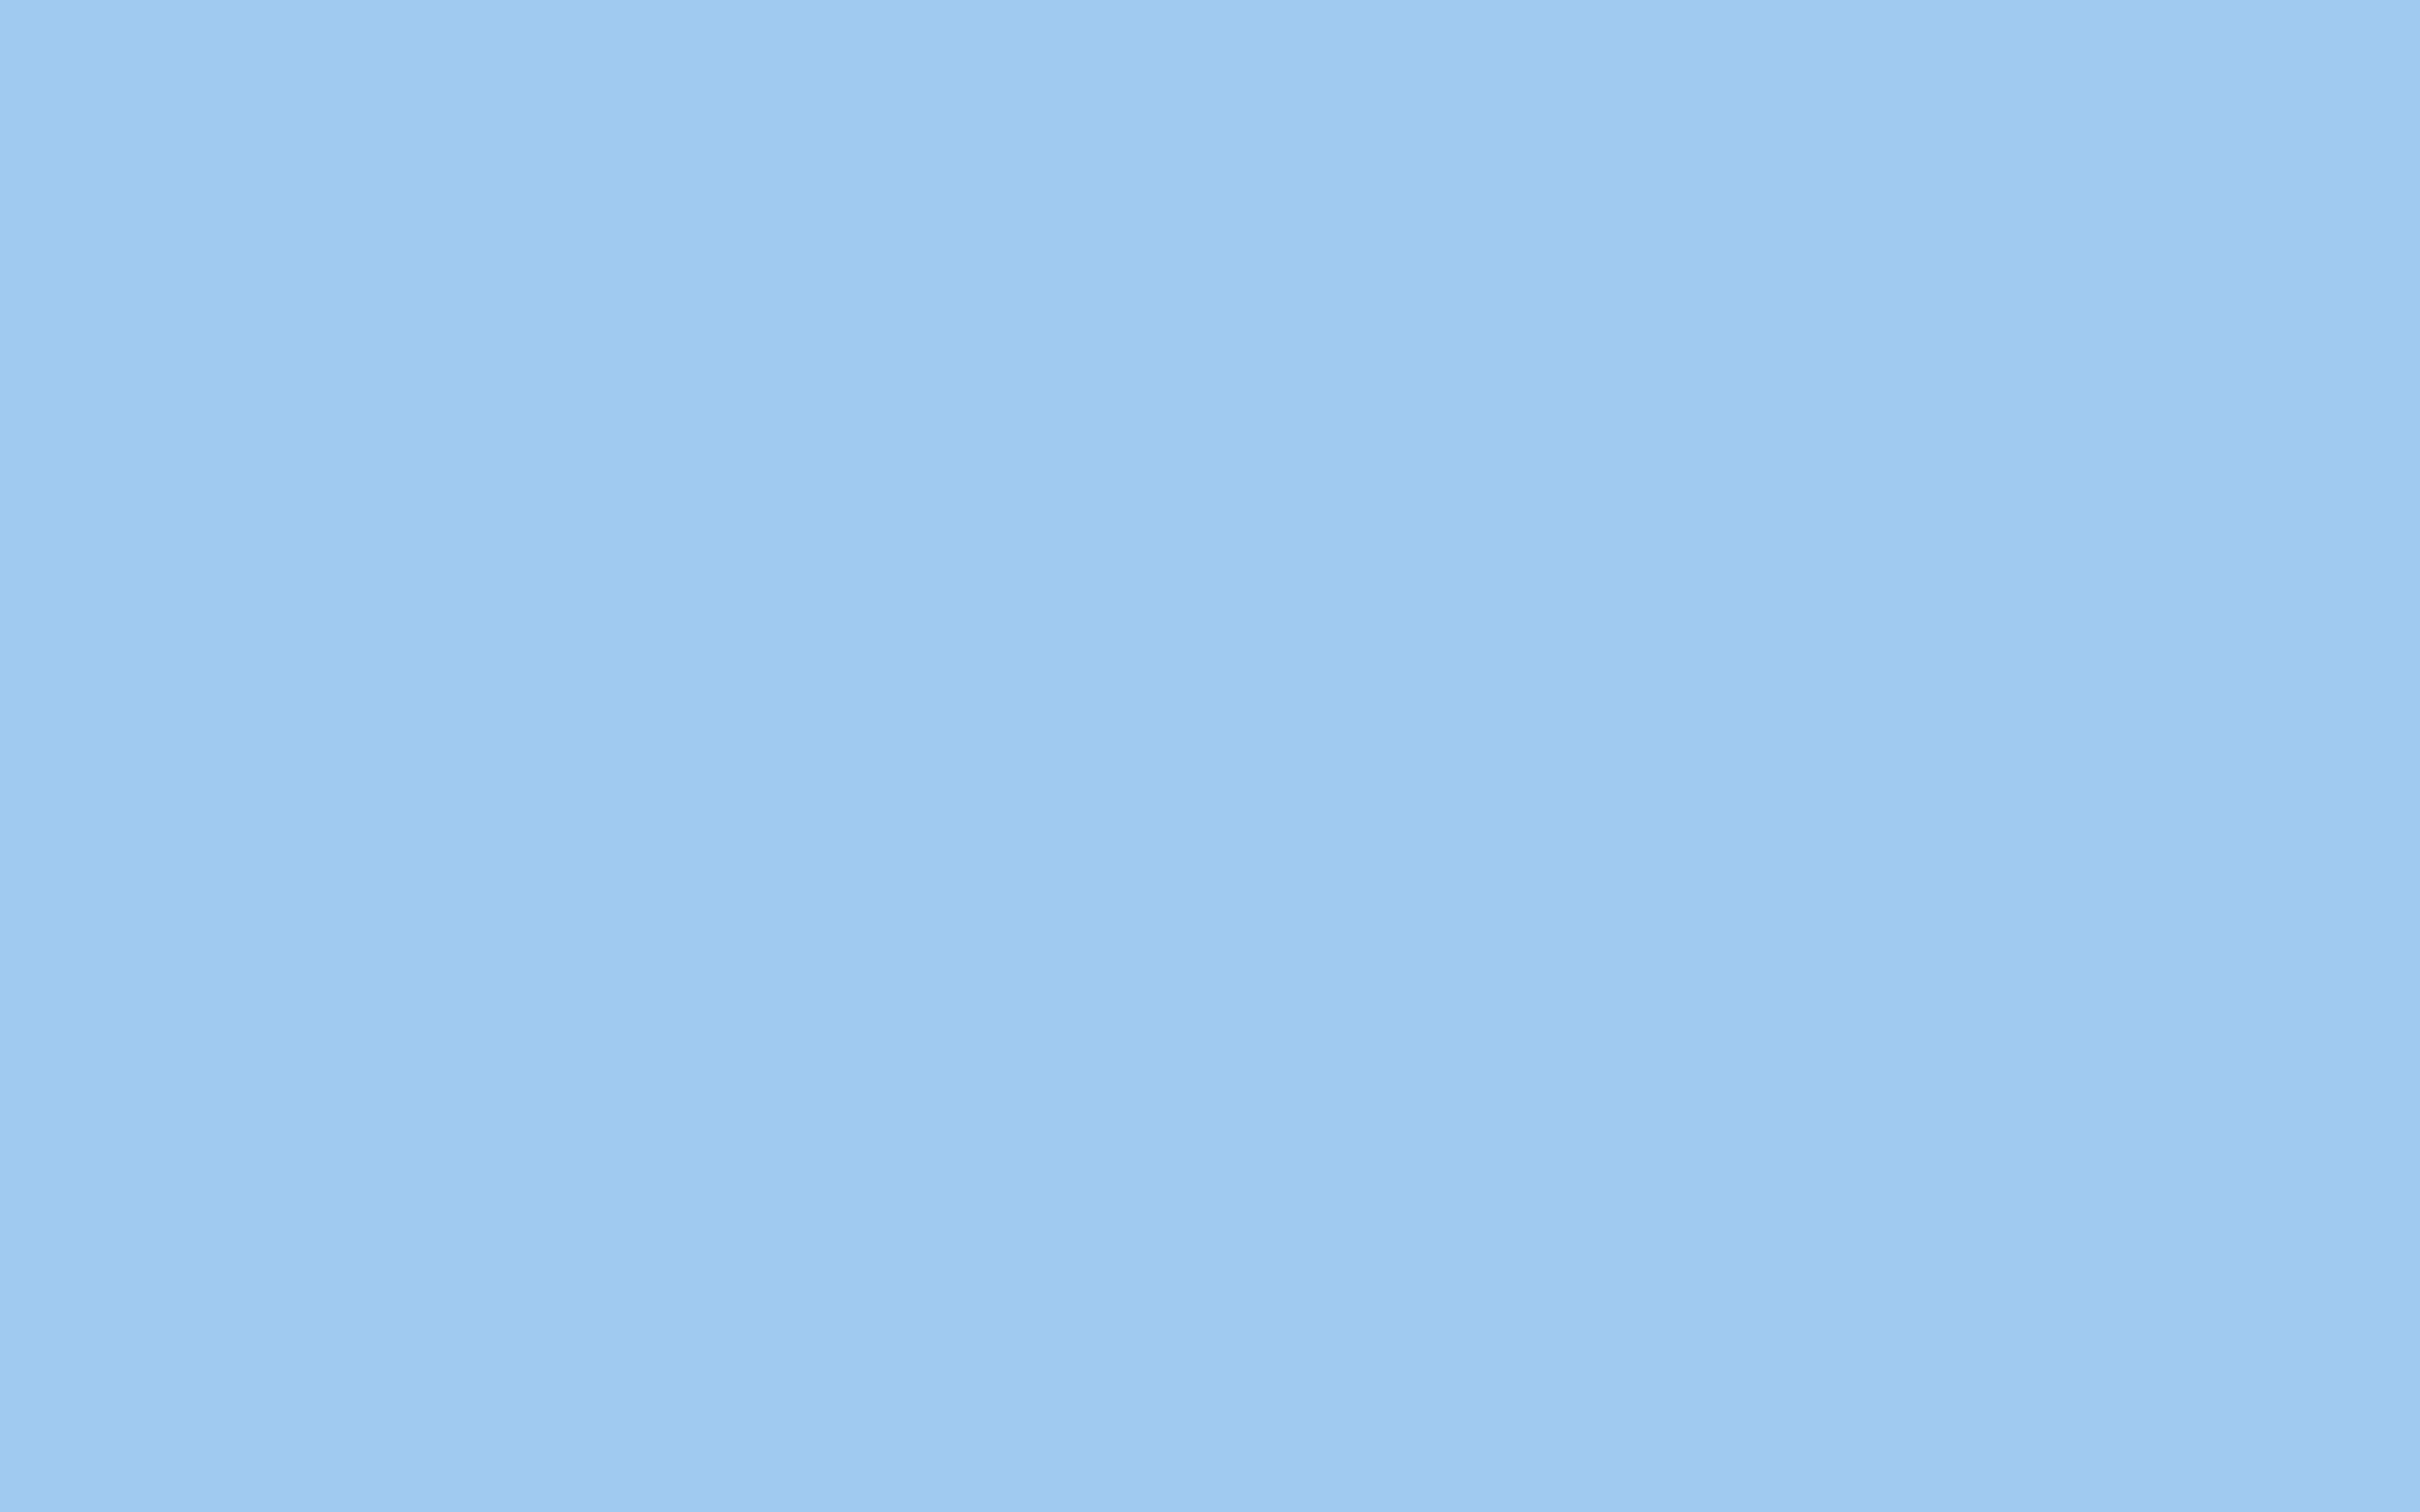 2880x1800 Baby Blue Eyes Solid Color Background